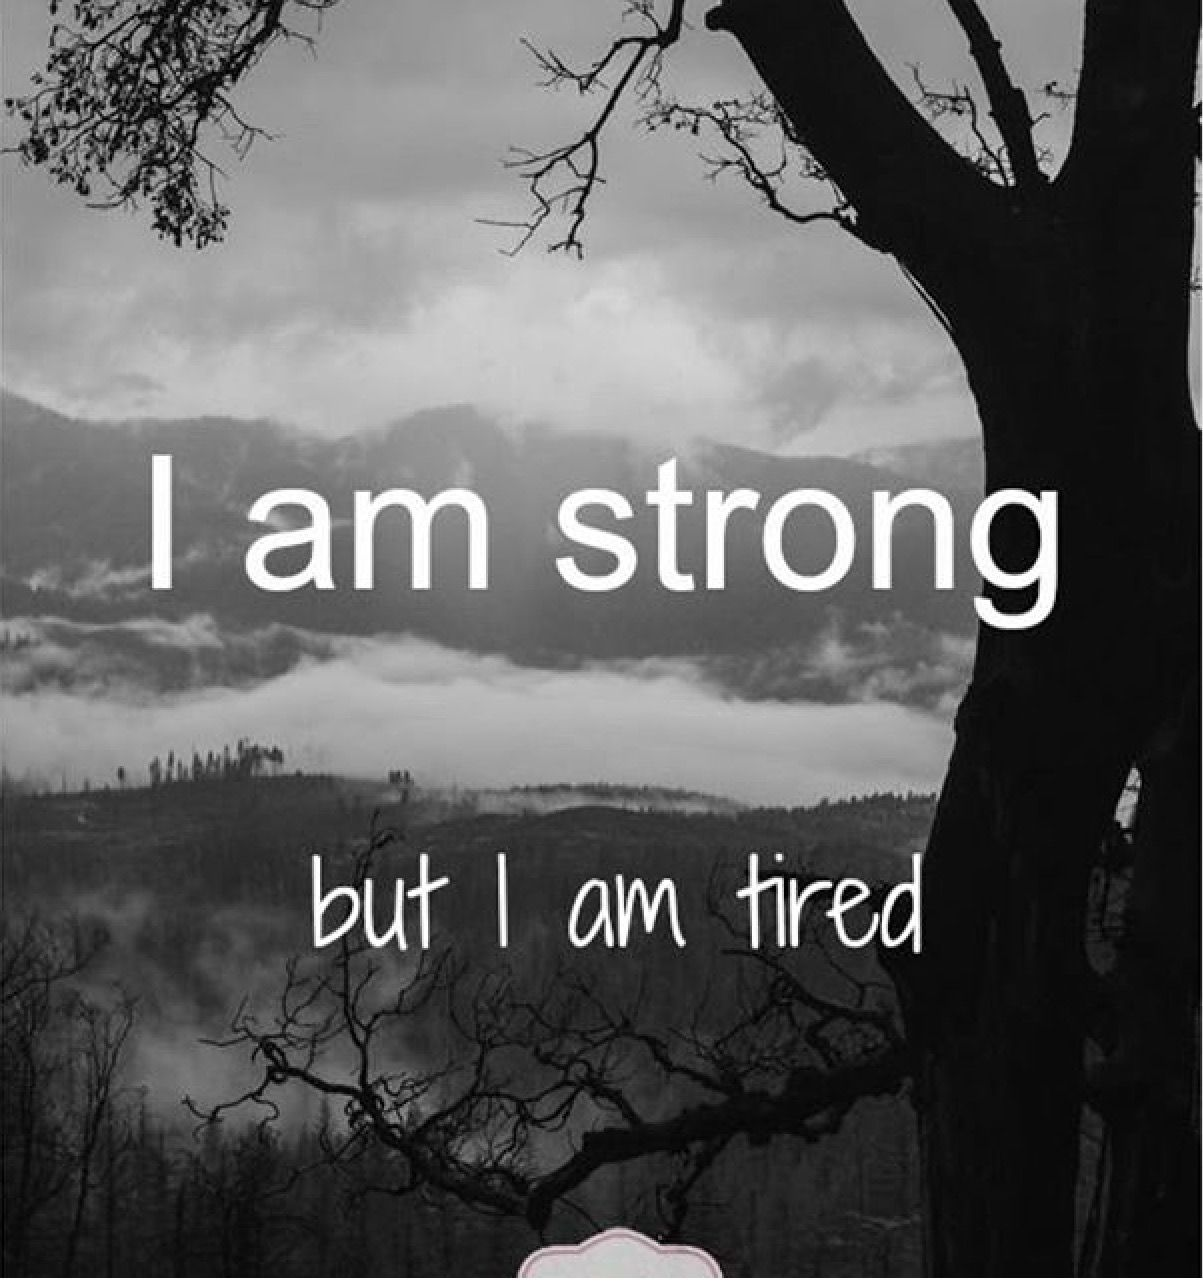 True i am tired need a little help waiting for someone to